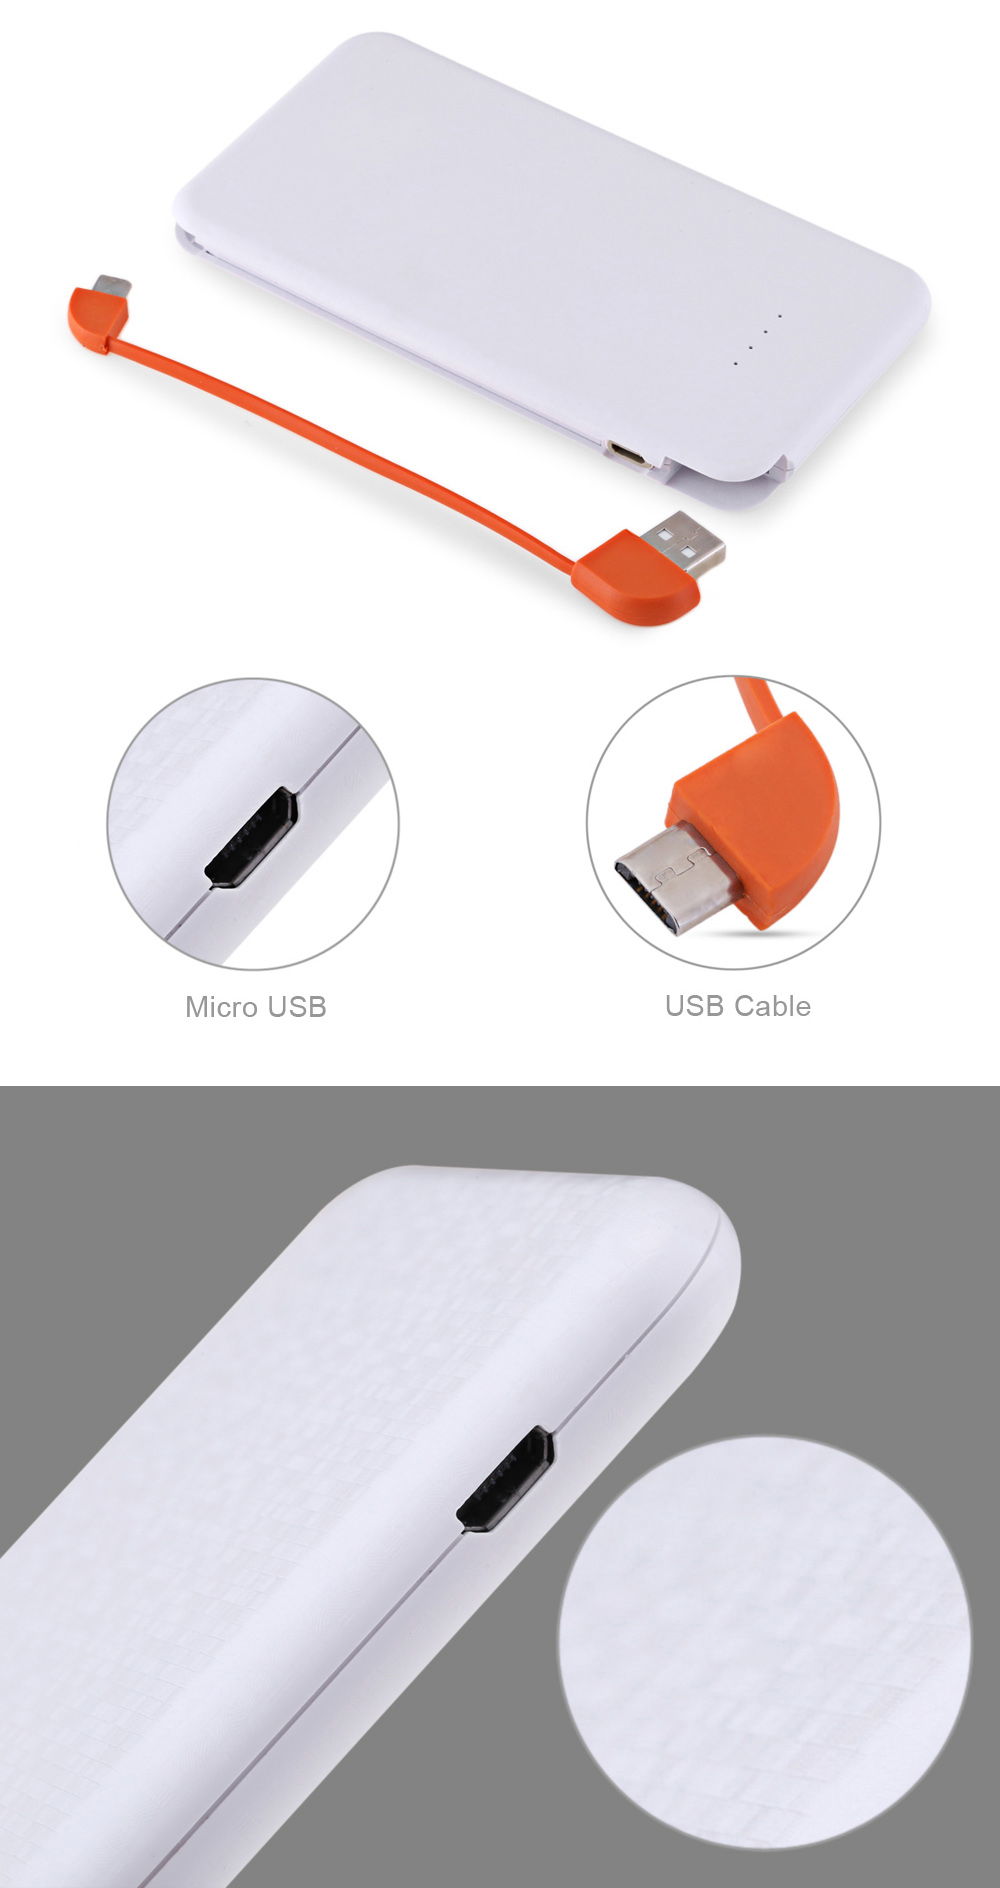 Ultra Slim 4000mAh Power Bank External Battery Built-in Micro USB Cable